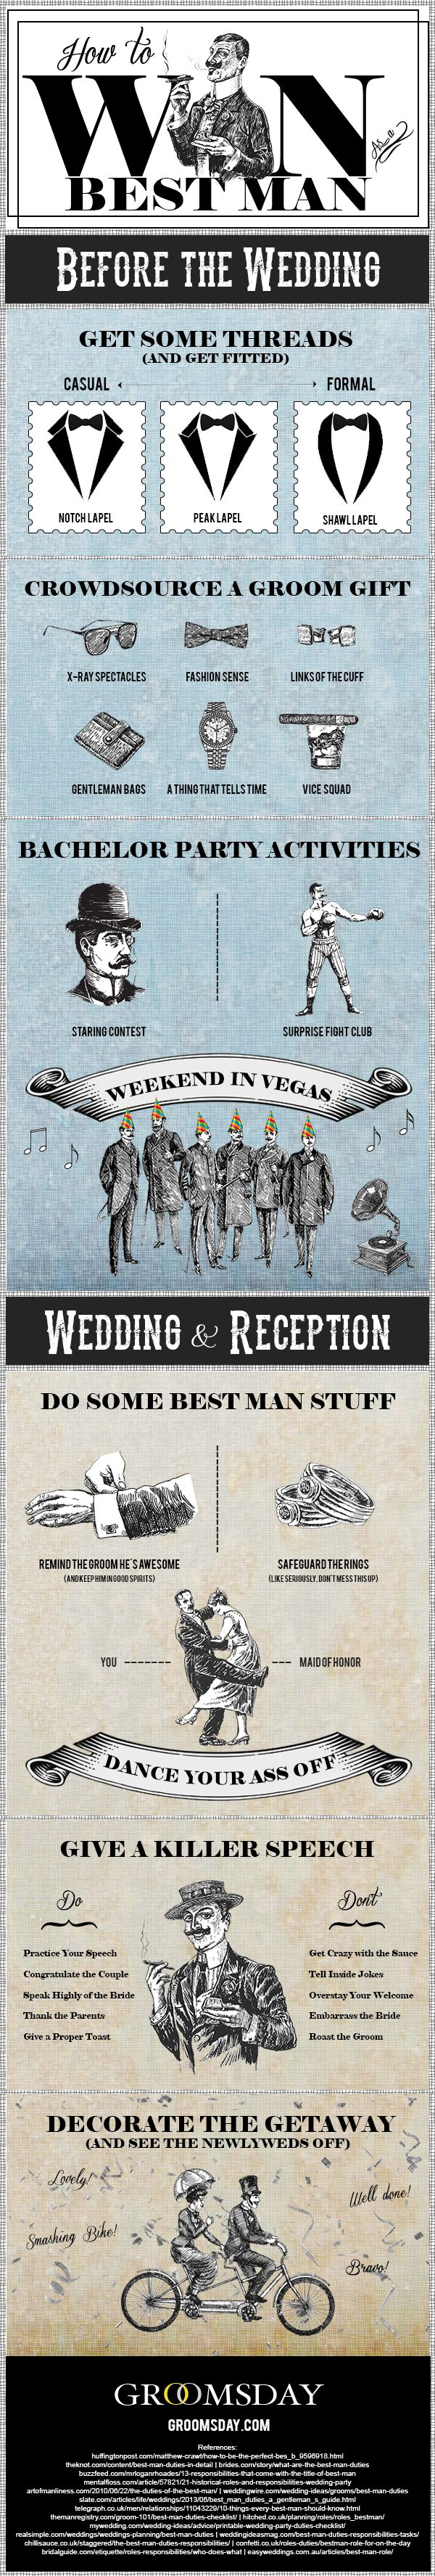 Share this with your best man and groomsmen! Being the groom's best man ain't rocket science but this infographic will help illustrate common best man duties and the responsibilities that come with the honor of being the best man such as giving a best man speech, bachelor party ideas, gift ideas and being a gent at the wedding. Share this with your best man and groomsmen! | Groomsday.com #bestman #bestmanspeech #groom #groomsmen #bachelorparty #wedding